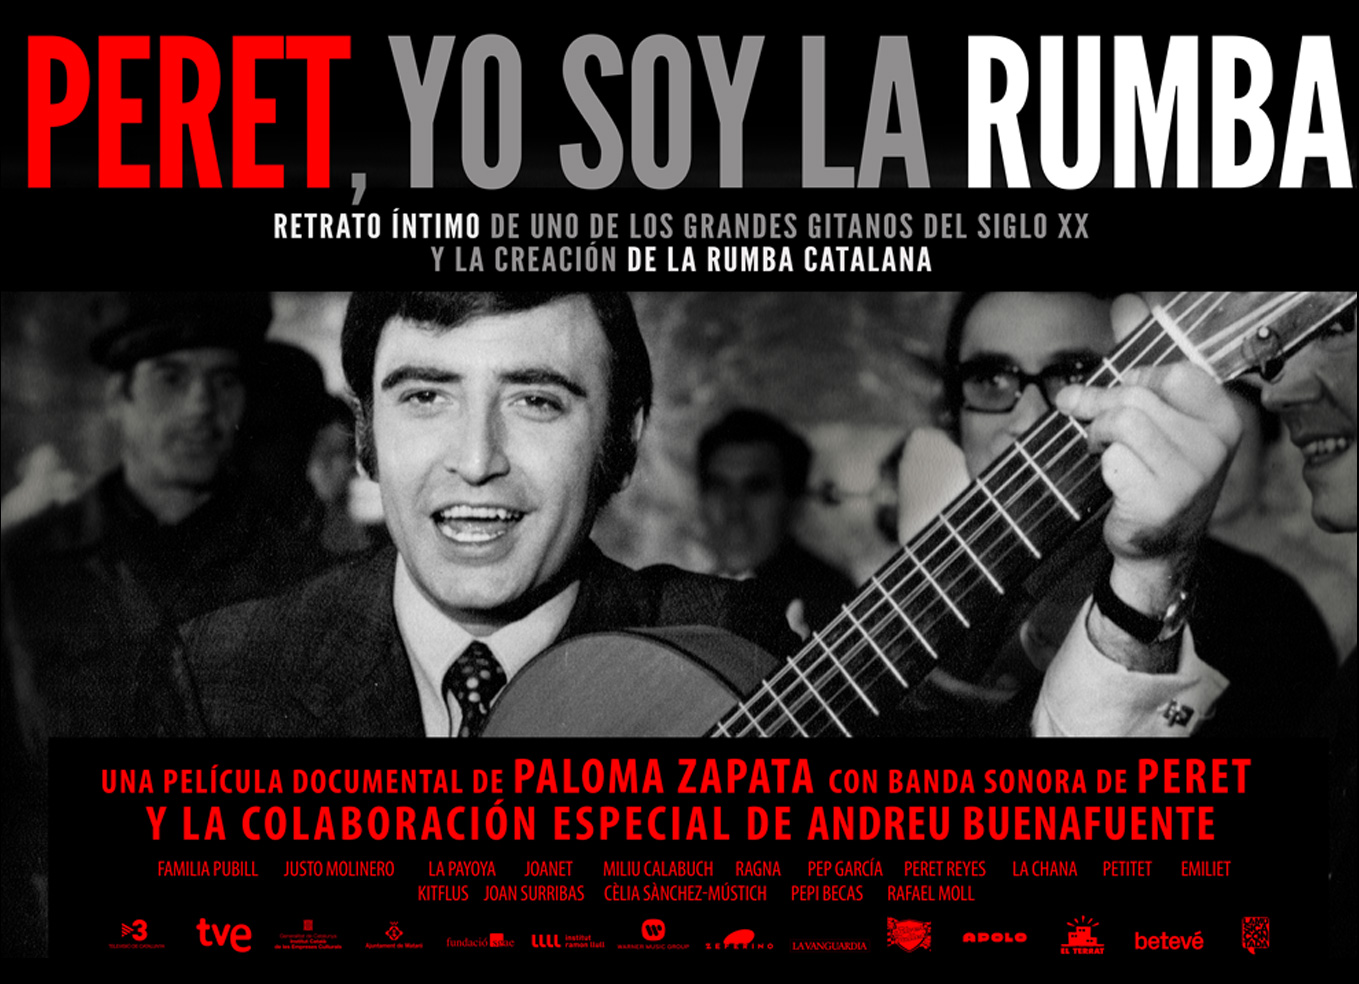 Peret: The King of Gypsy Rumba